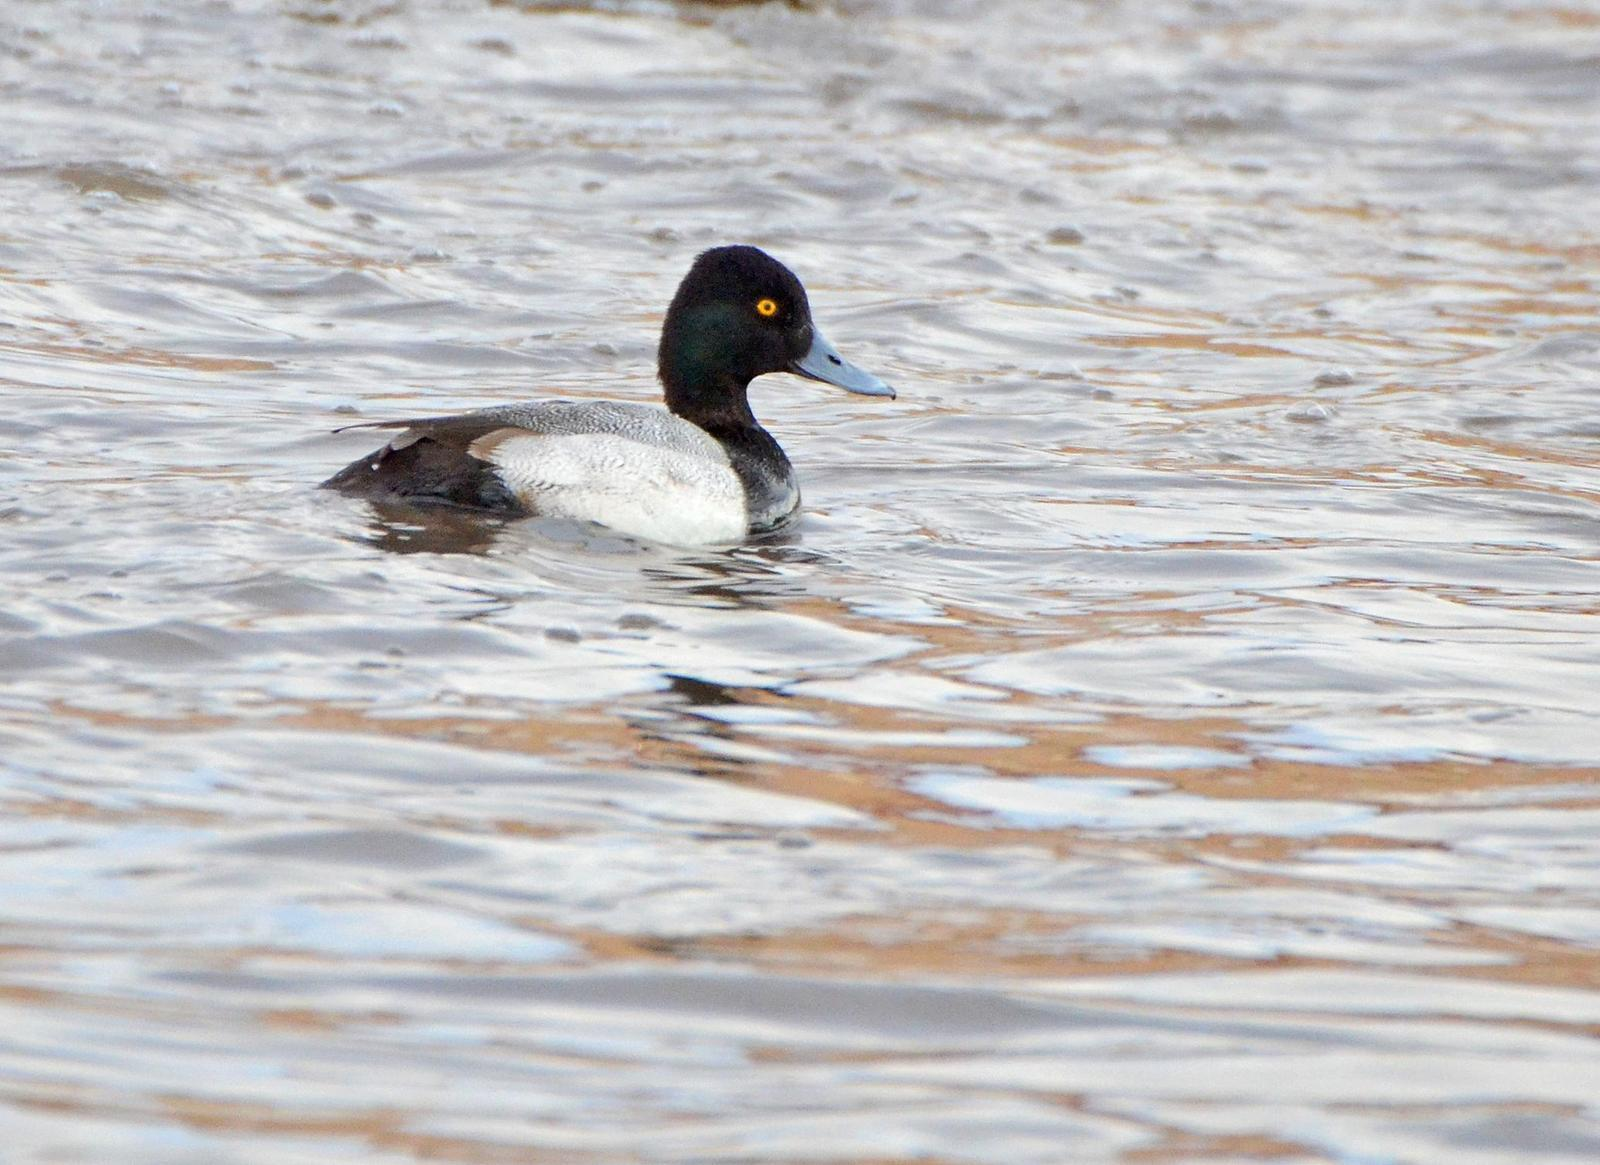 Lesser Scaup Photo by Steven Mlodinow